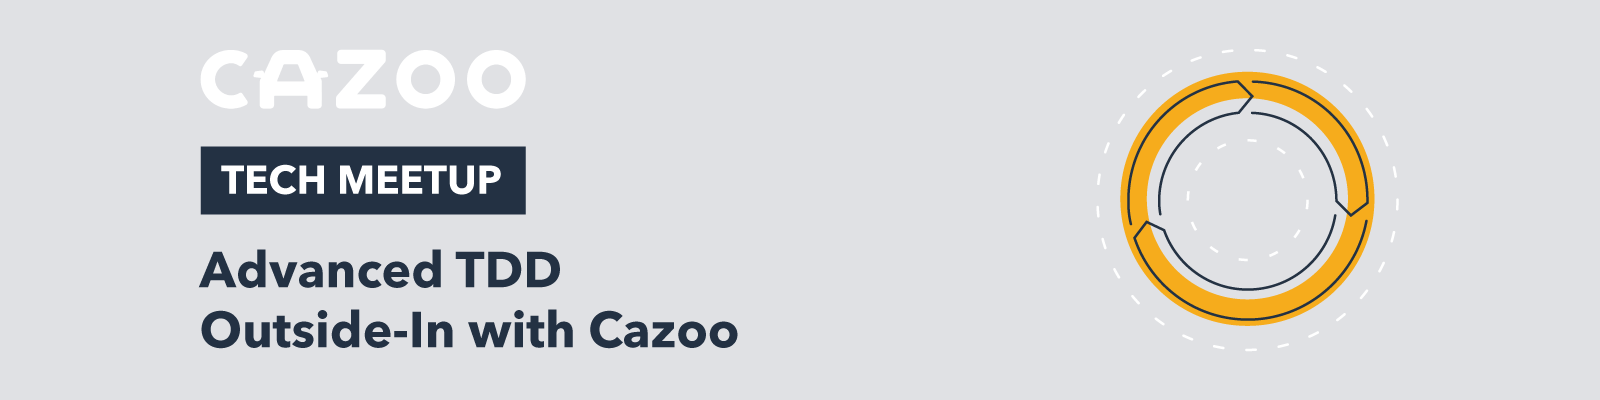 Advanced tdd outside in with cazoo header